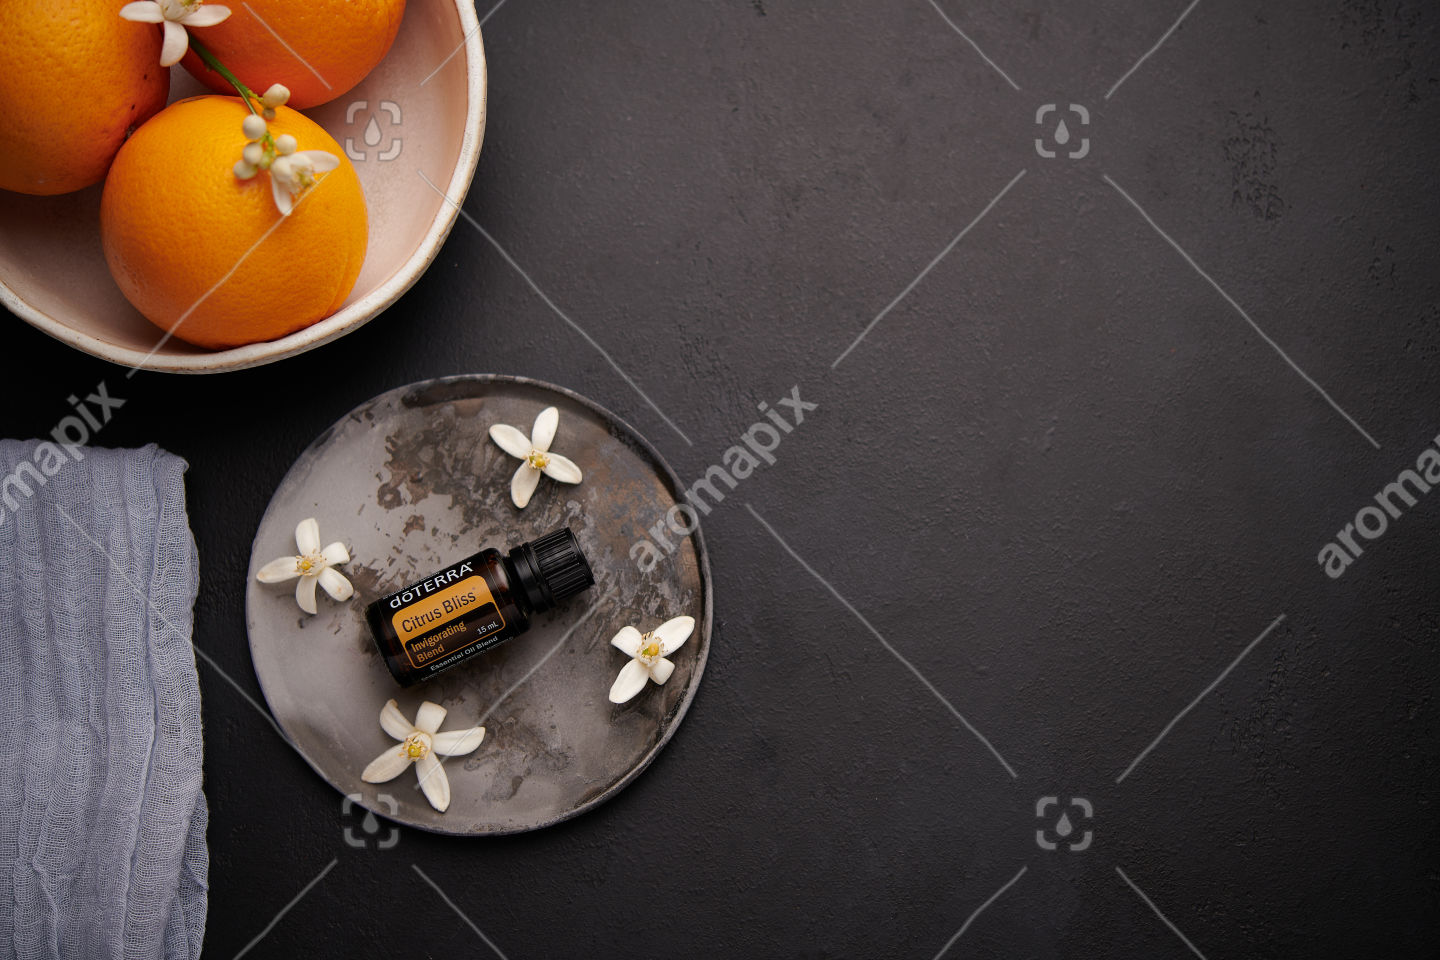 doTERRA Citrus Bliss with orange blossoms on black